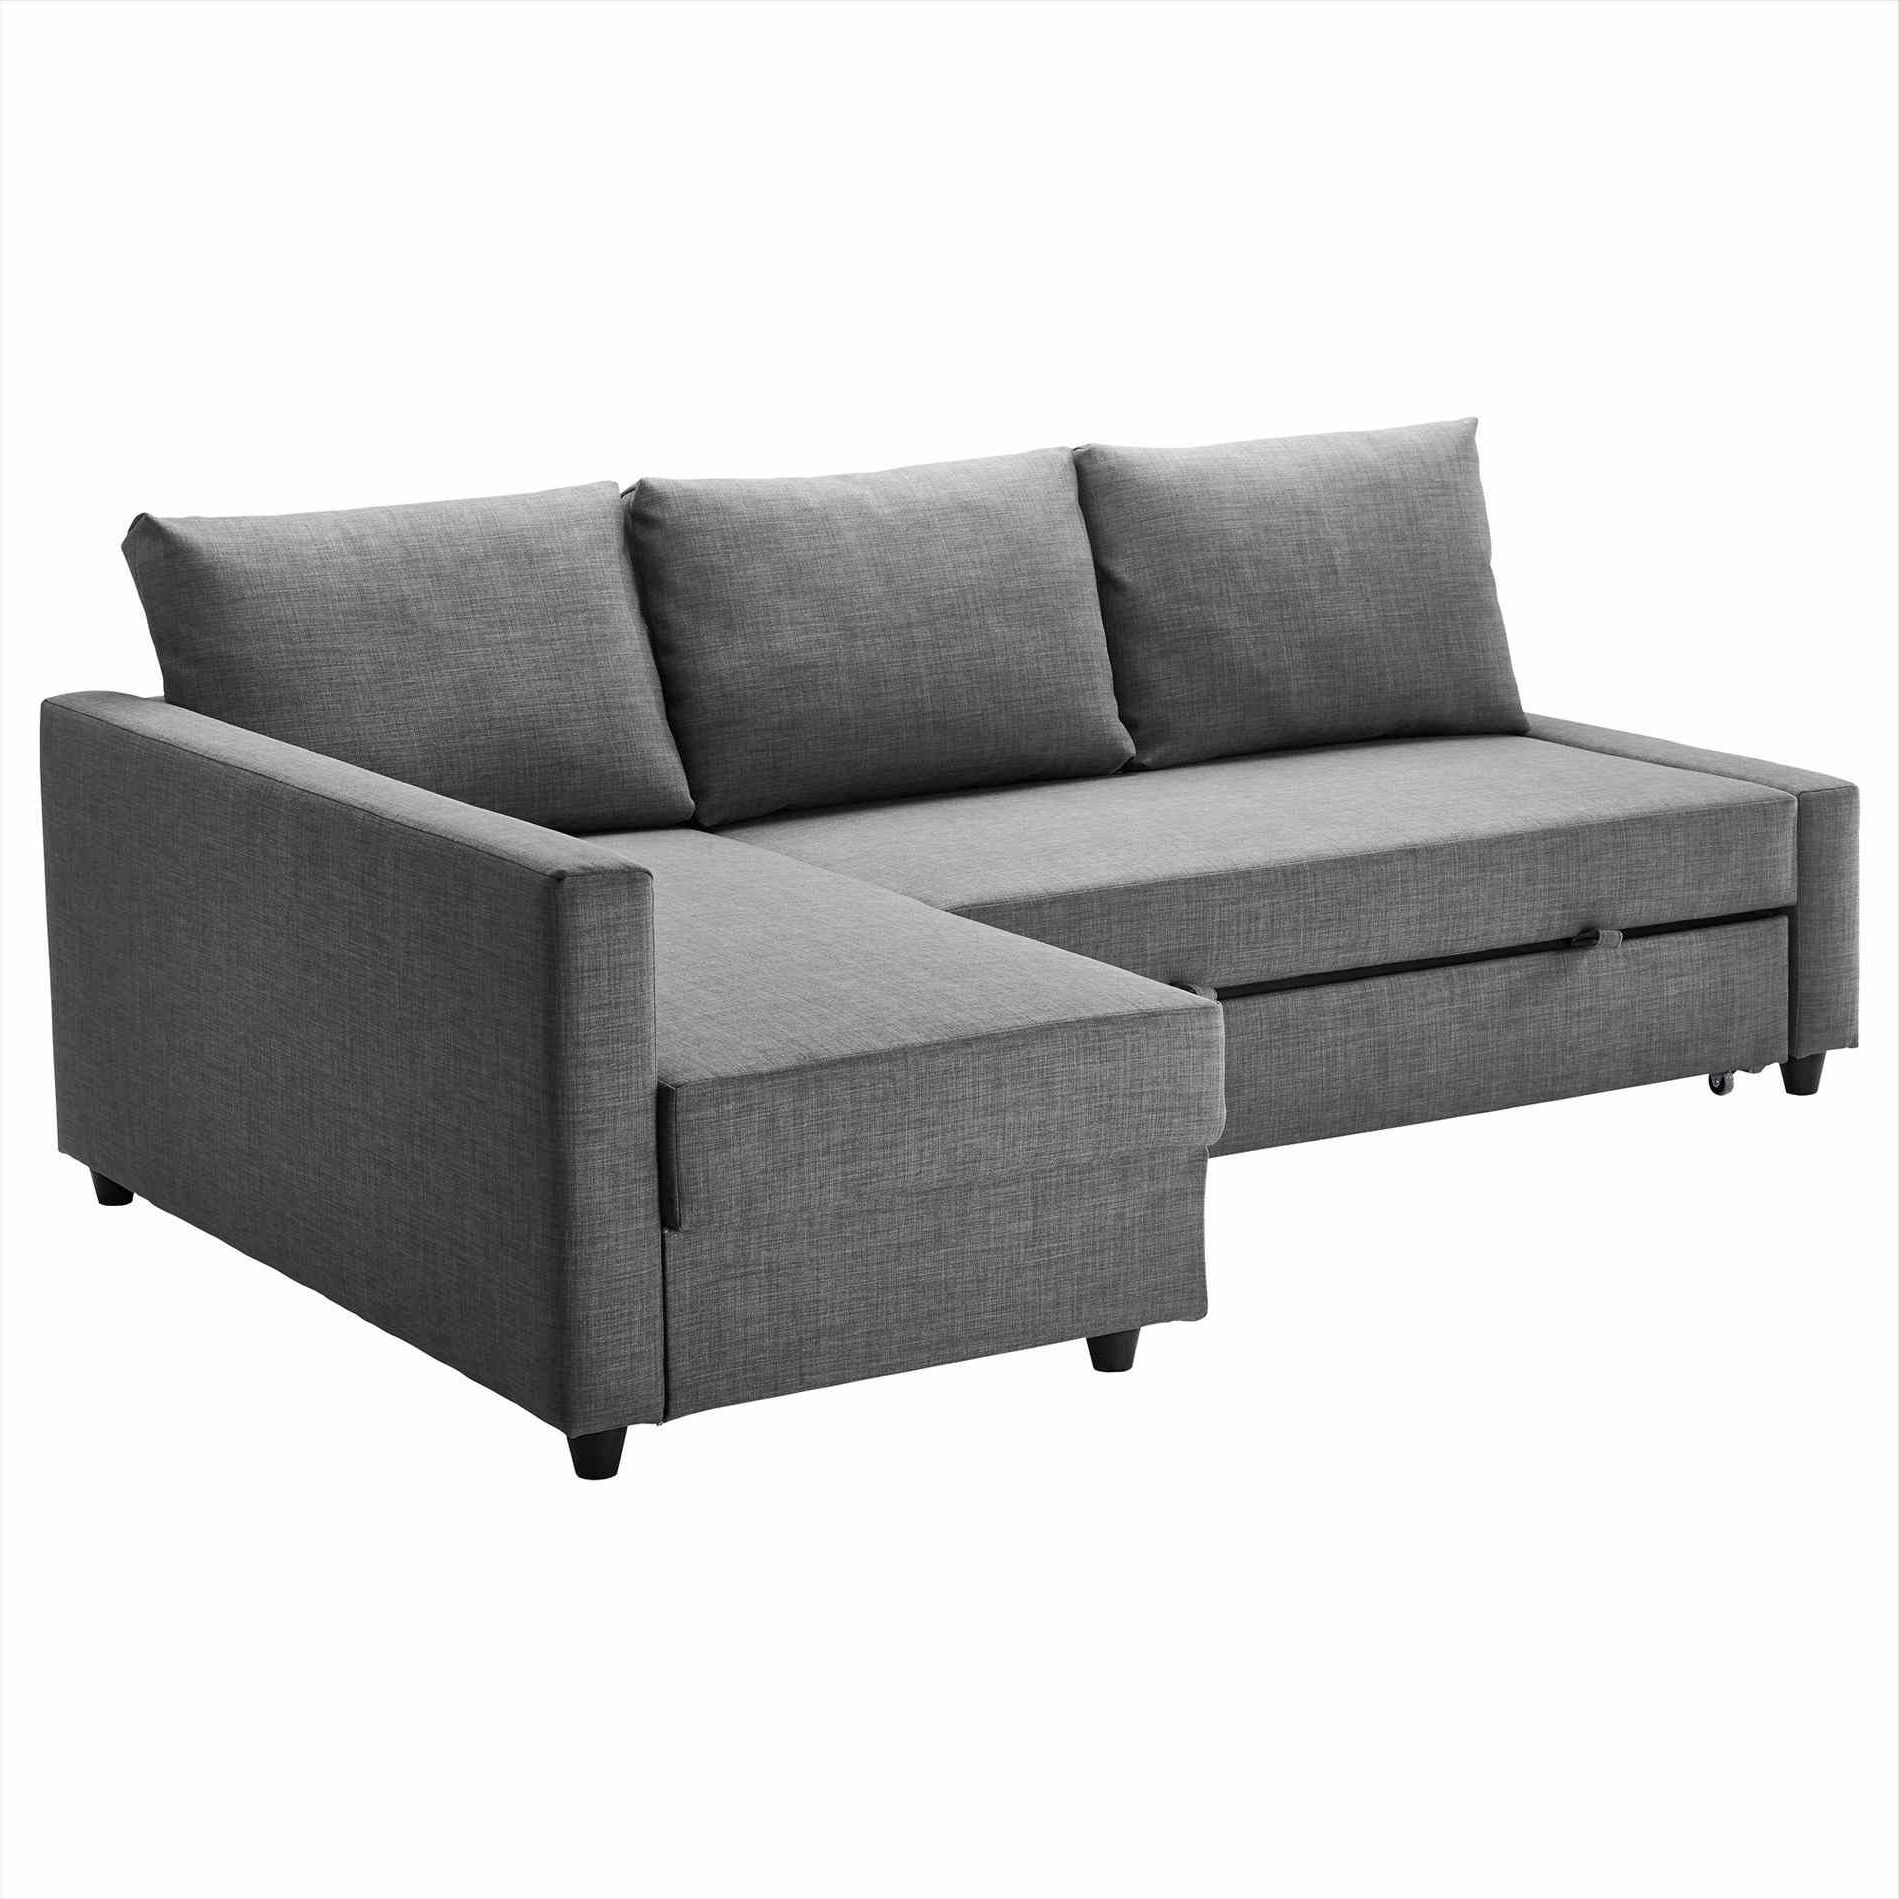 Recent Sofa : Chaise Sofa Double Chaise Sectional Leather Apartment Size In Apartment Sectional Sofas With Chaise (View 19 of 20)